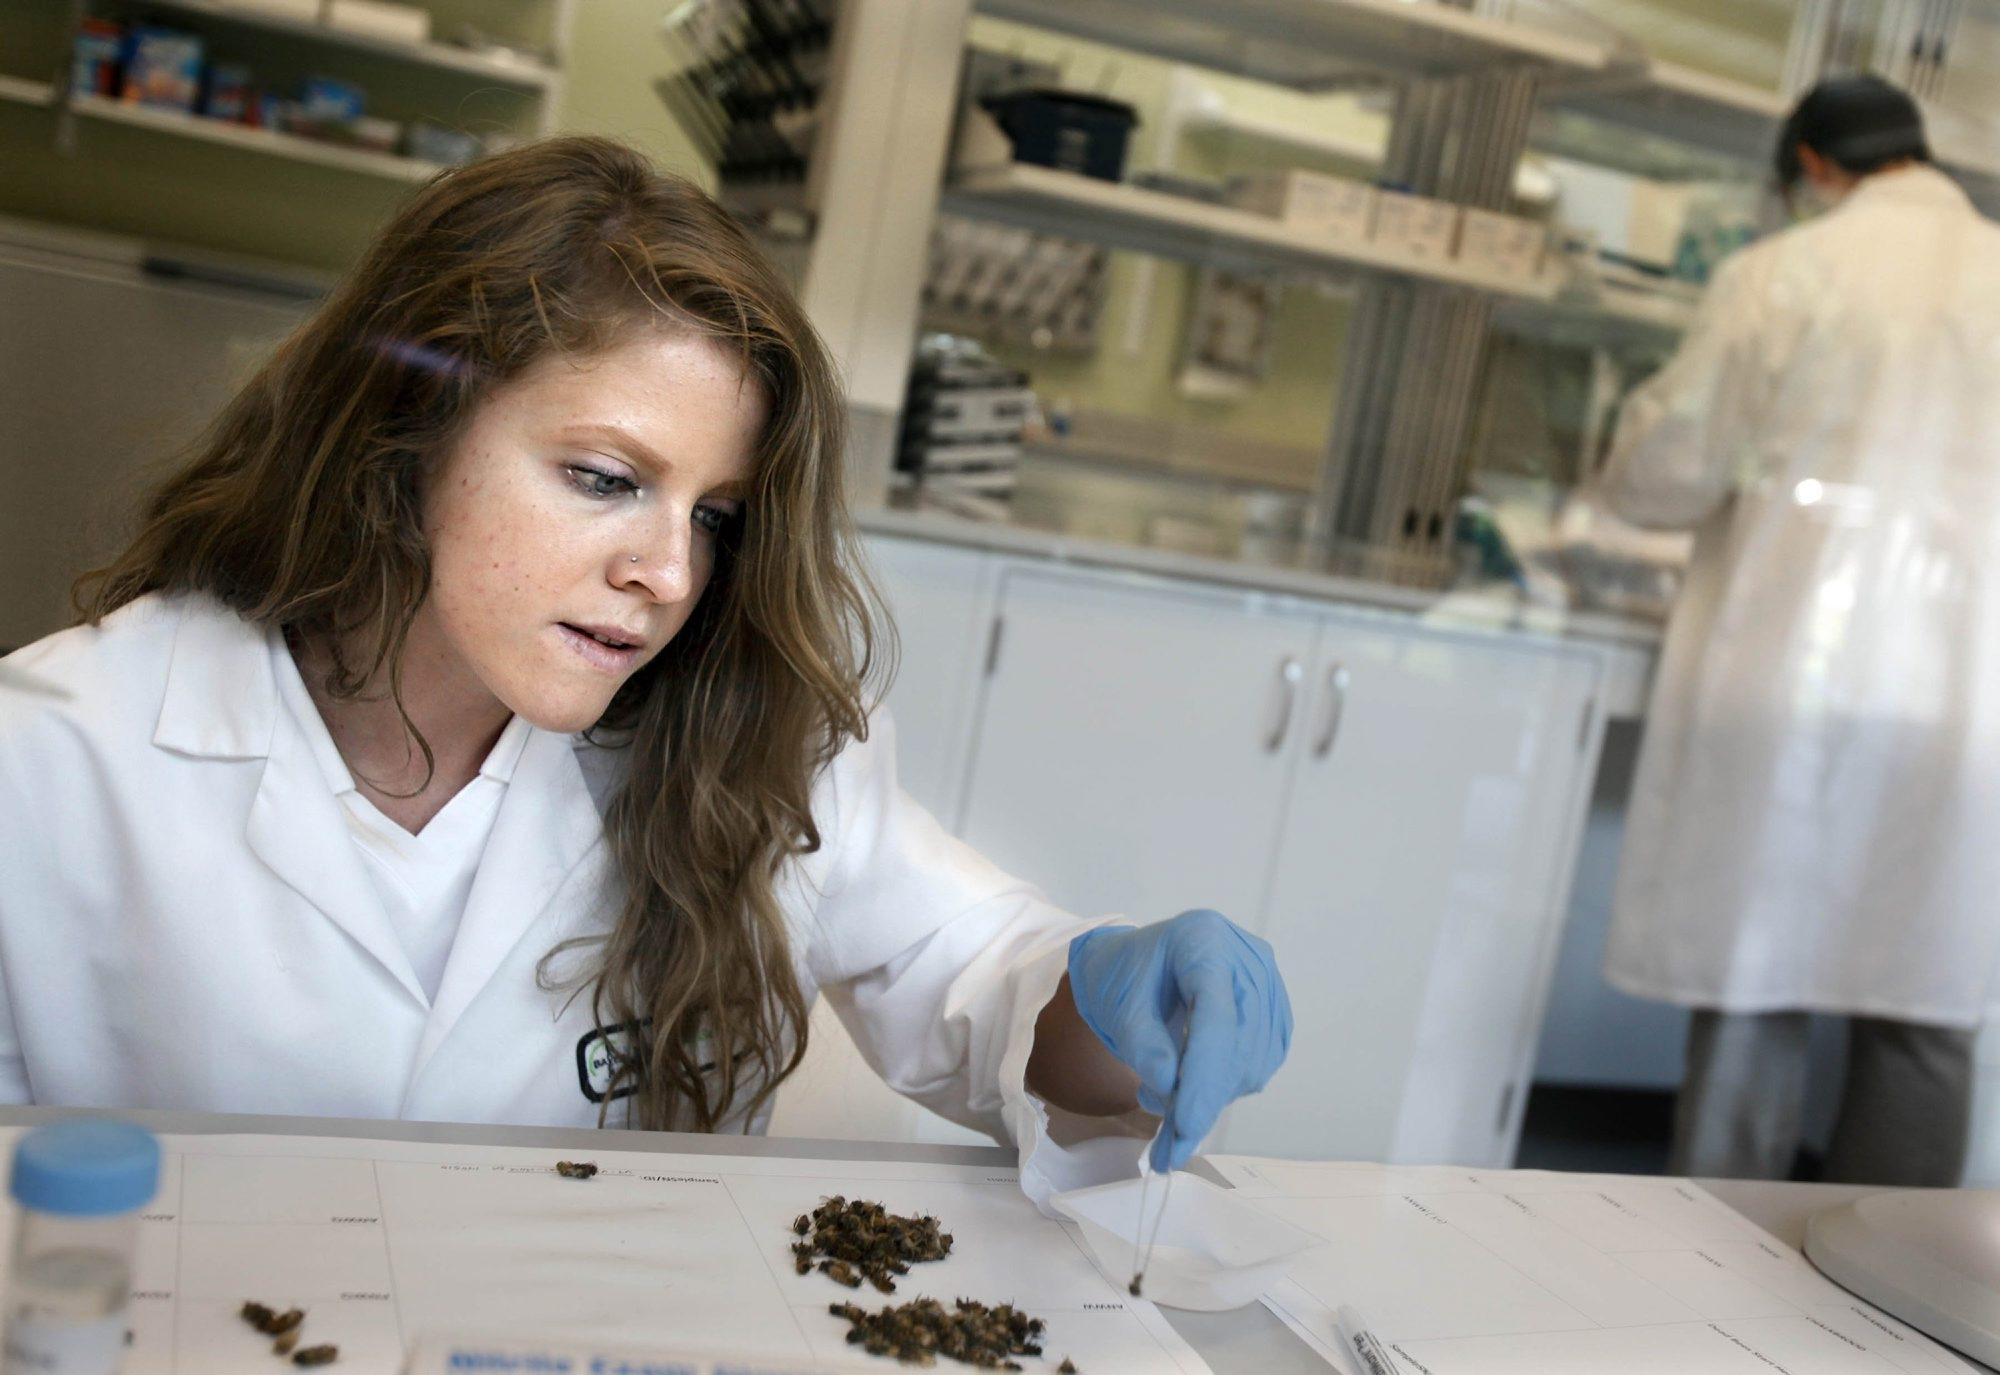 Jen Williams, research assistant, works in the lab at the $2.4 million Bayer CropScience North American Bee Care Center in Raleigh, N.C. Bayer manufactures insecticides that some critics say harm bees.